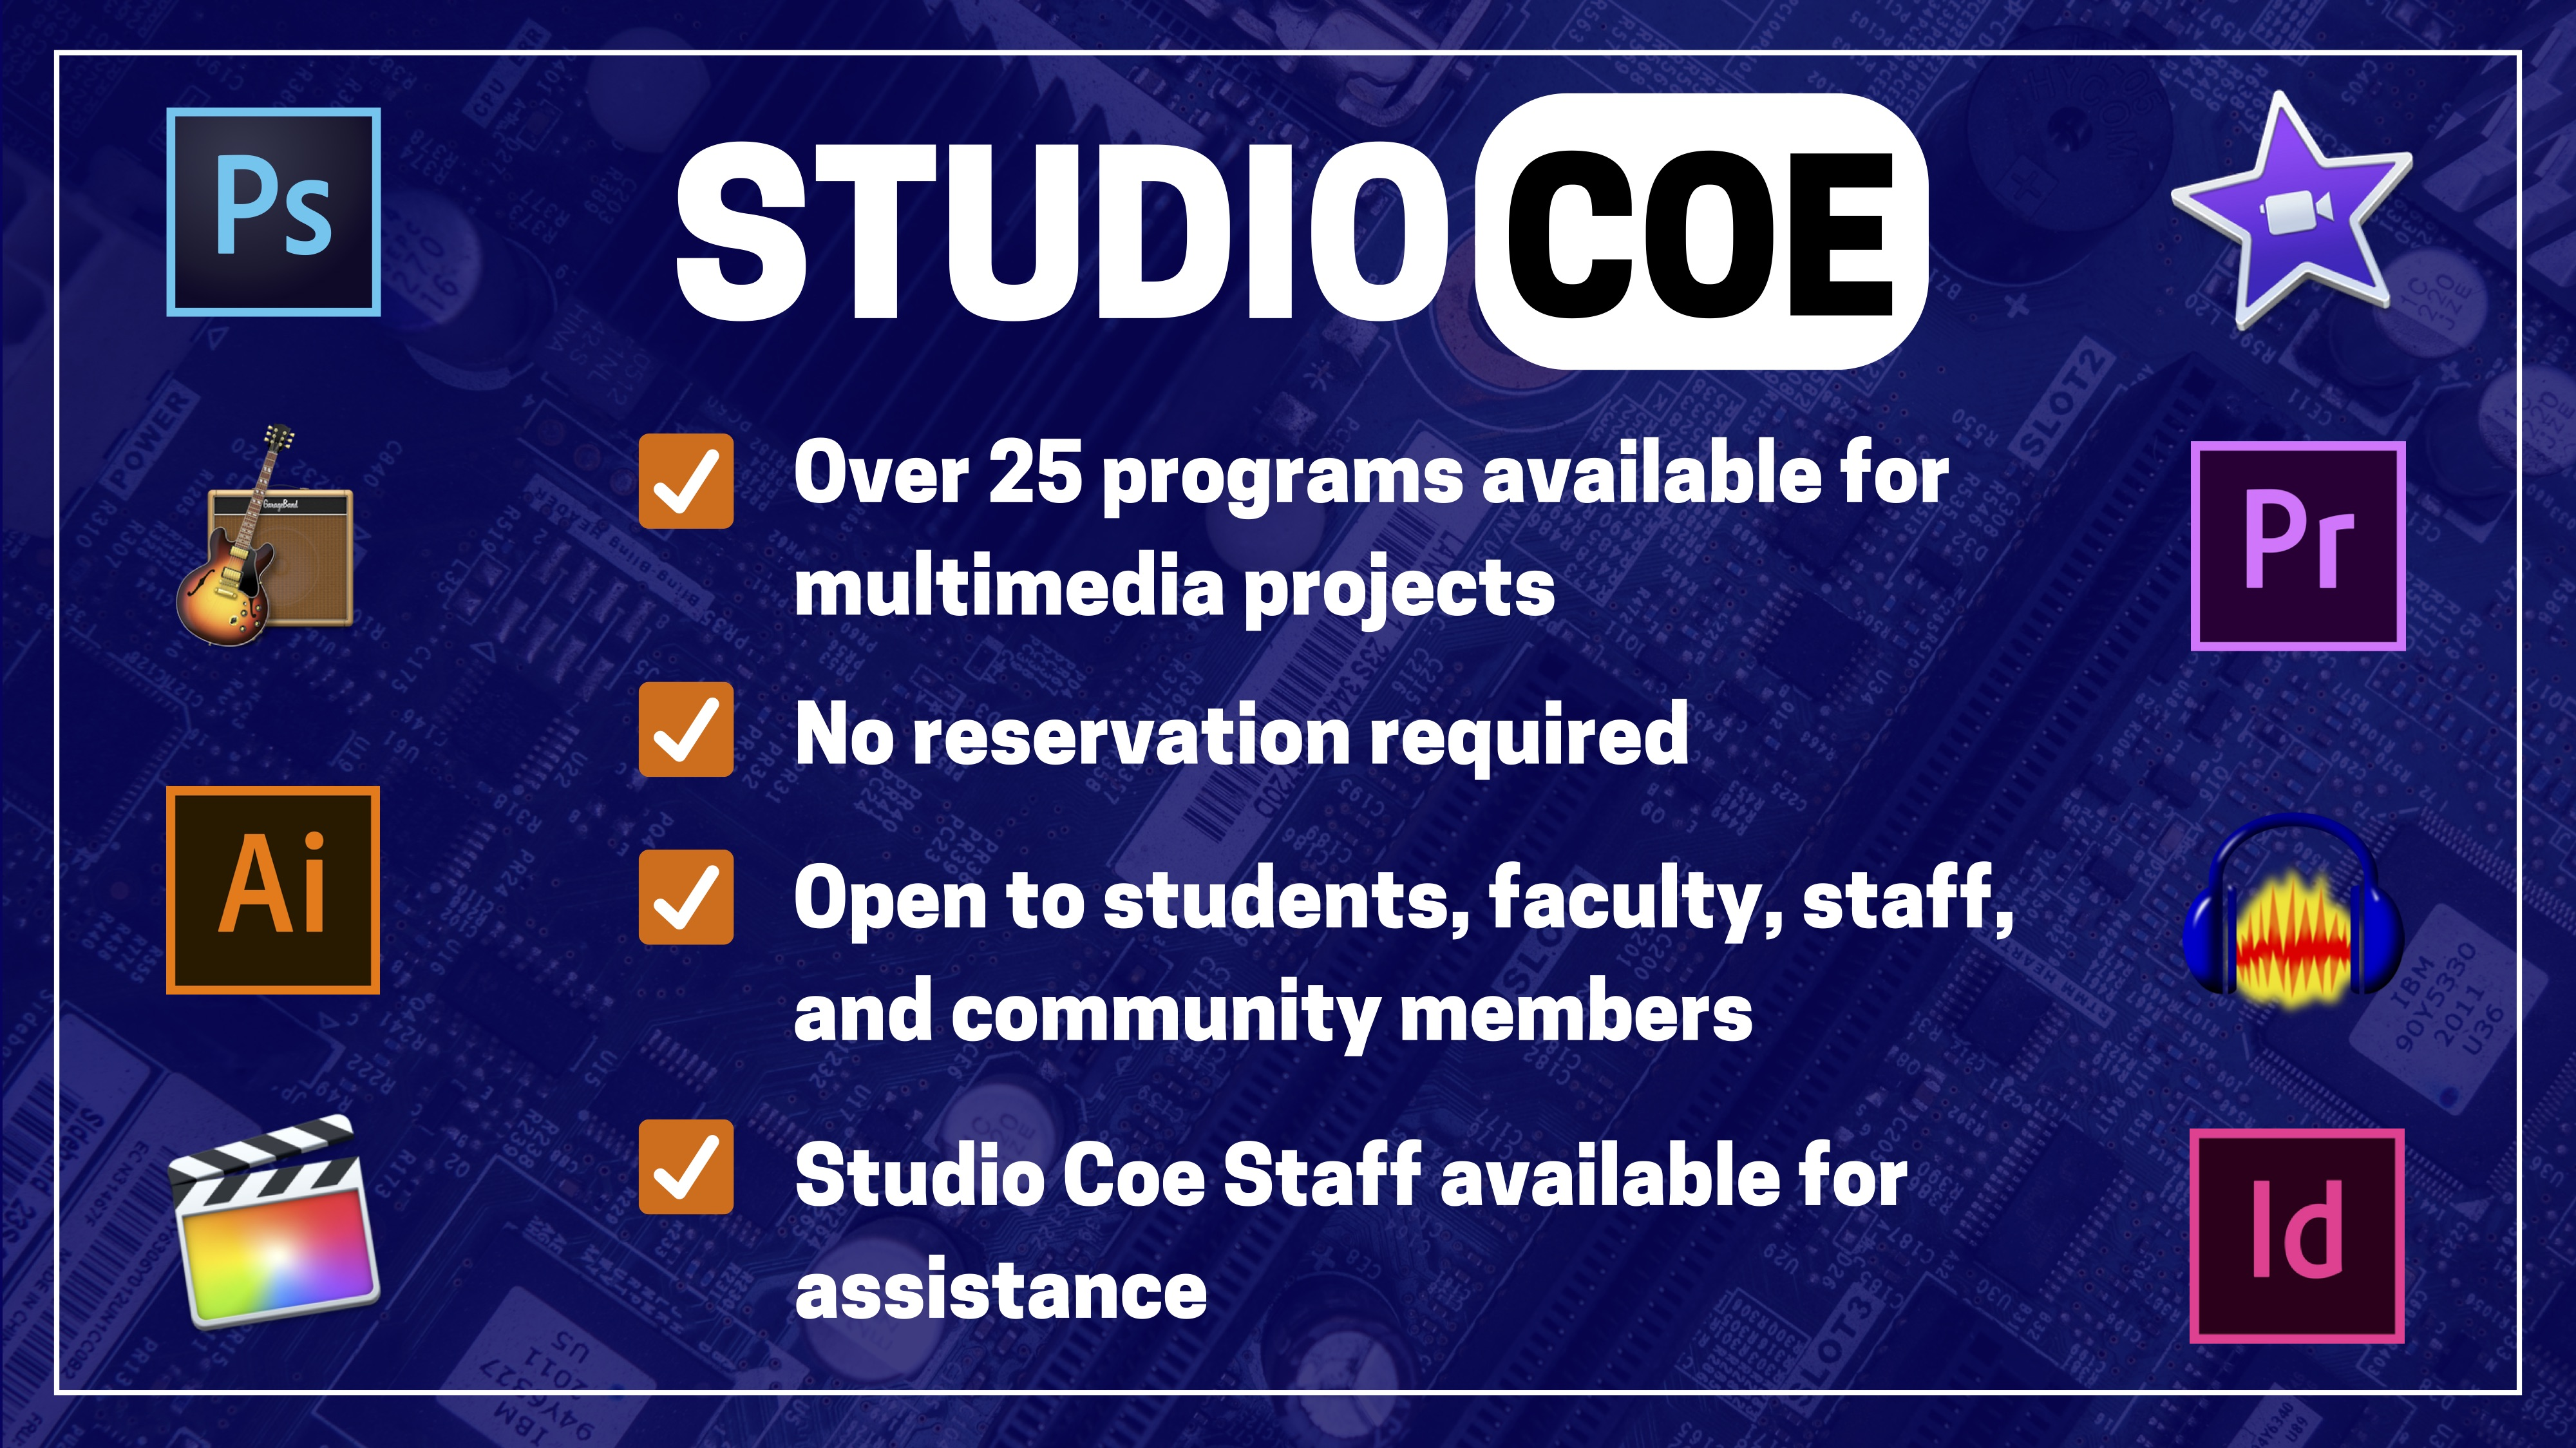 Studio Coe, featuring over 25 programs available for multimedia projects, no reservation required, open to students, faculty, staff, and community members, and Studio Coe Staff are available for assistance. Images of logos for variety of software.